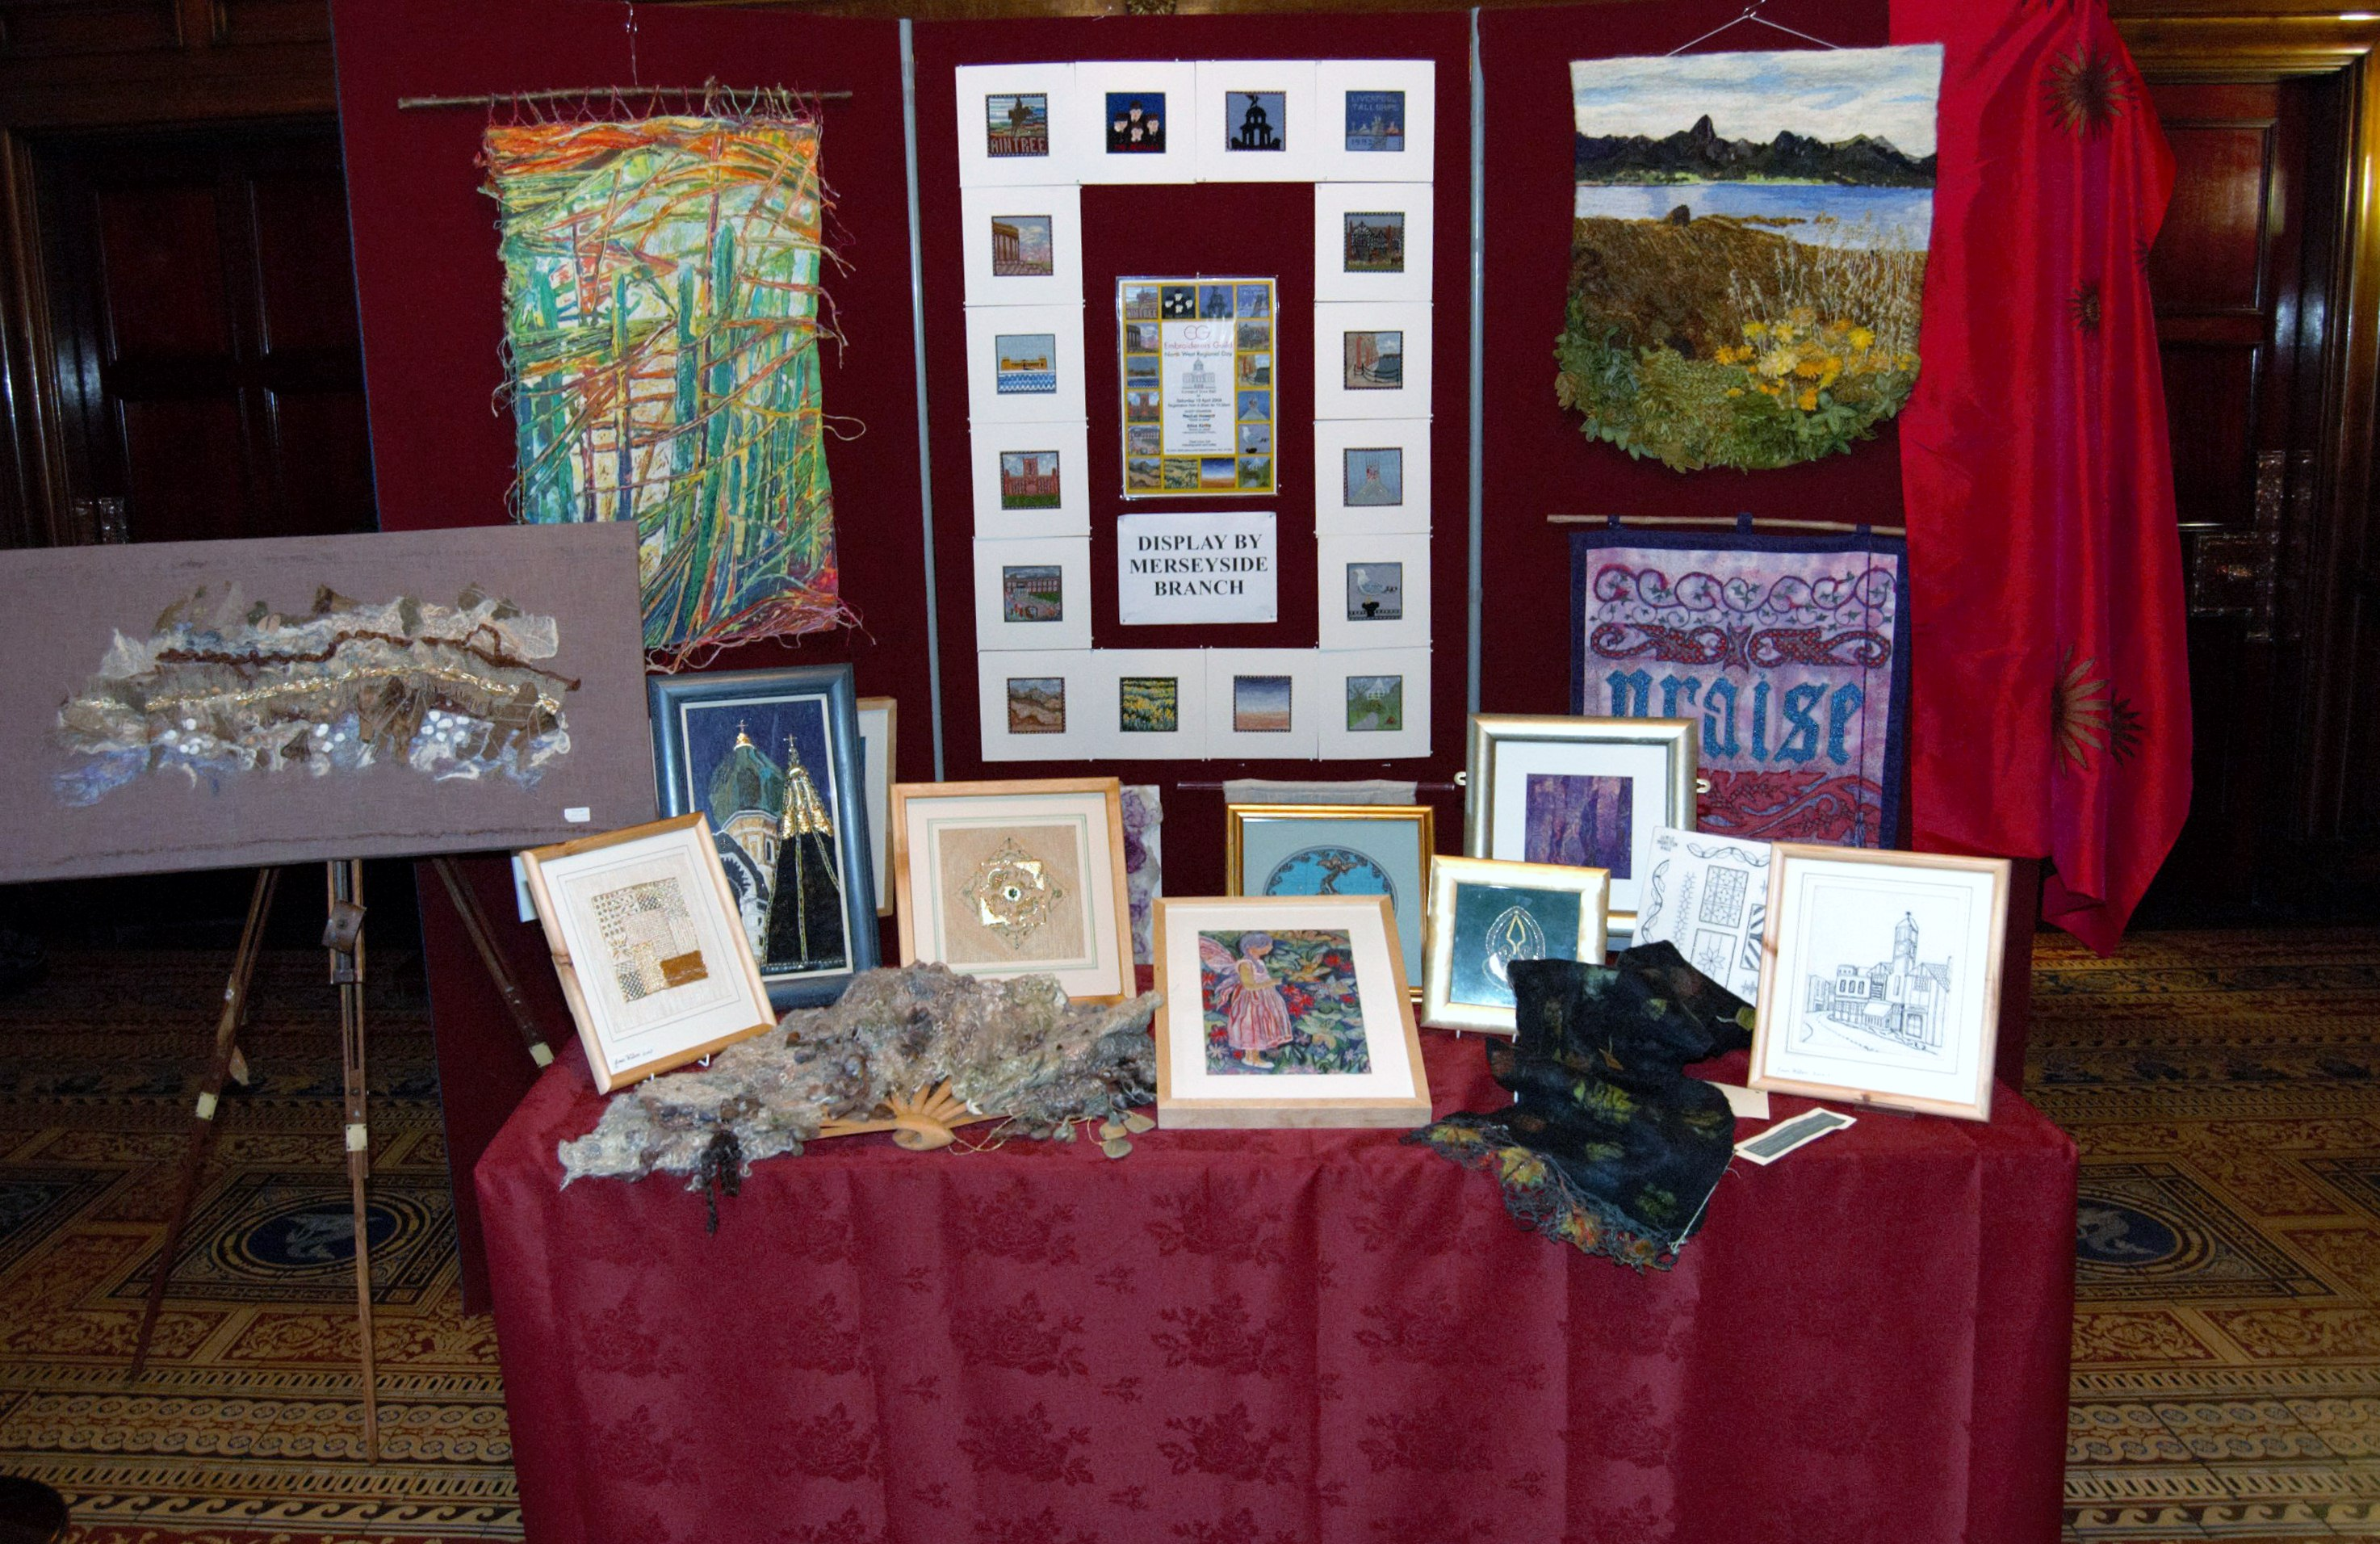 Merseyside Branch display at NW Regional Day 2008 in Liverpool Town Hall